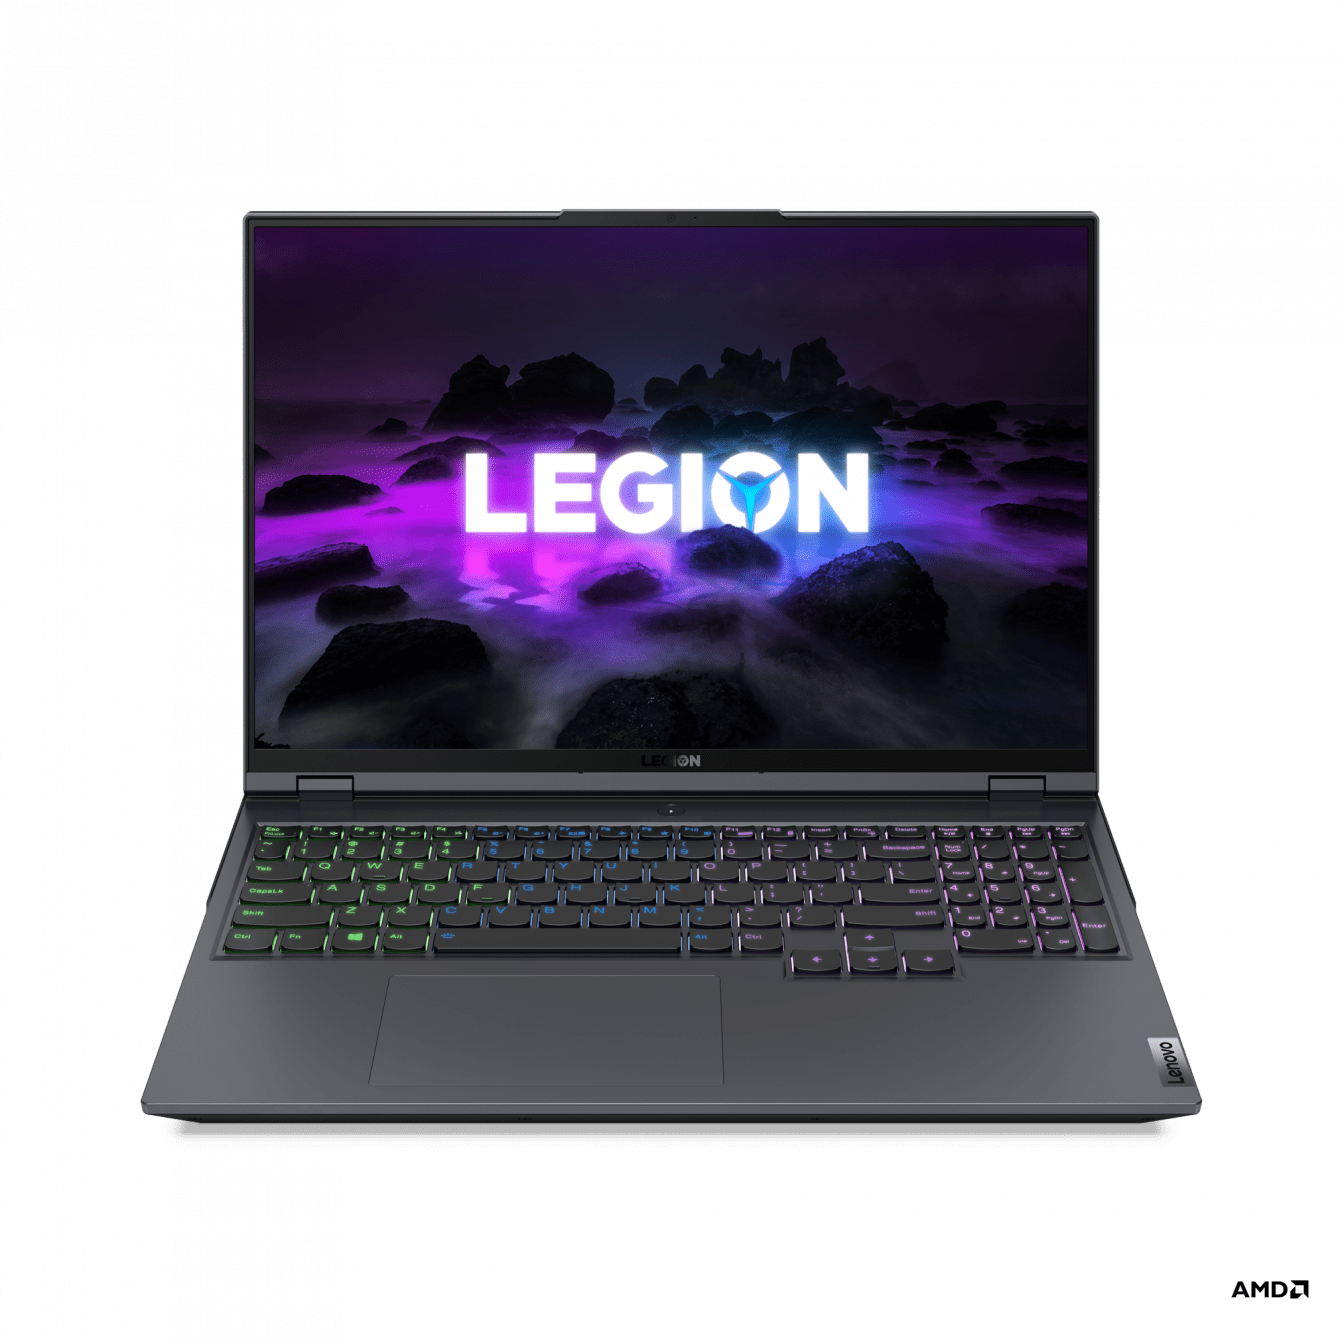 Lenovo Legion 5 Pro: the gaming notebook arrives in Italy